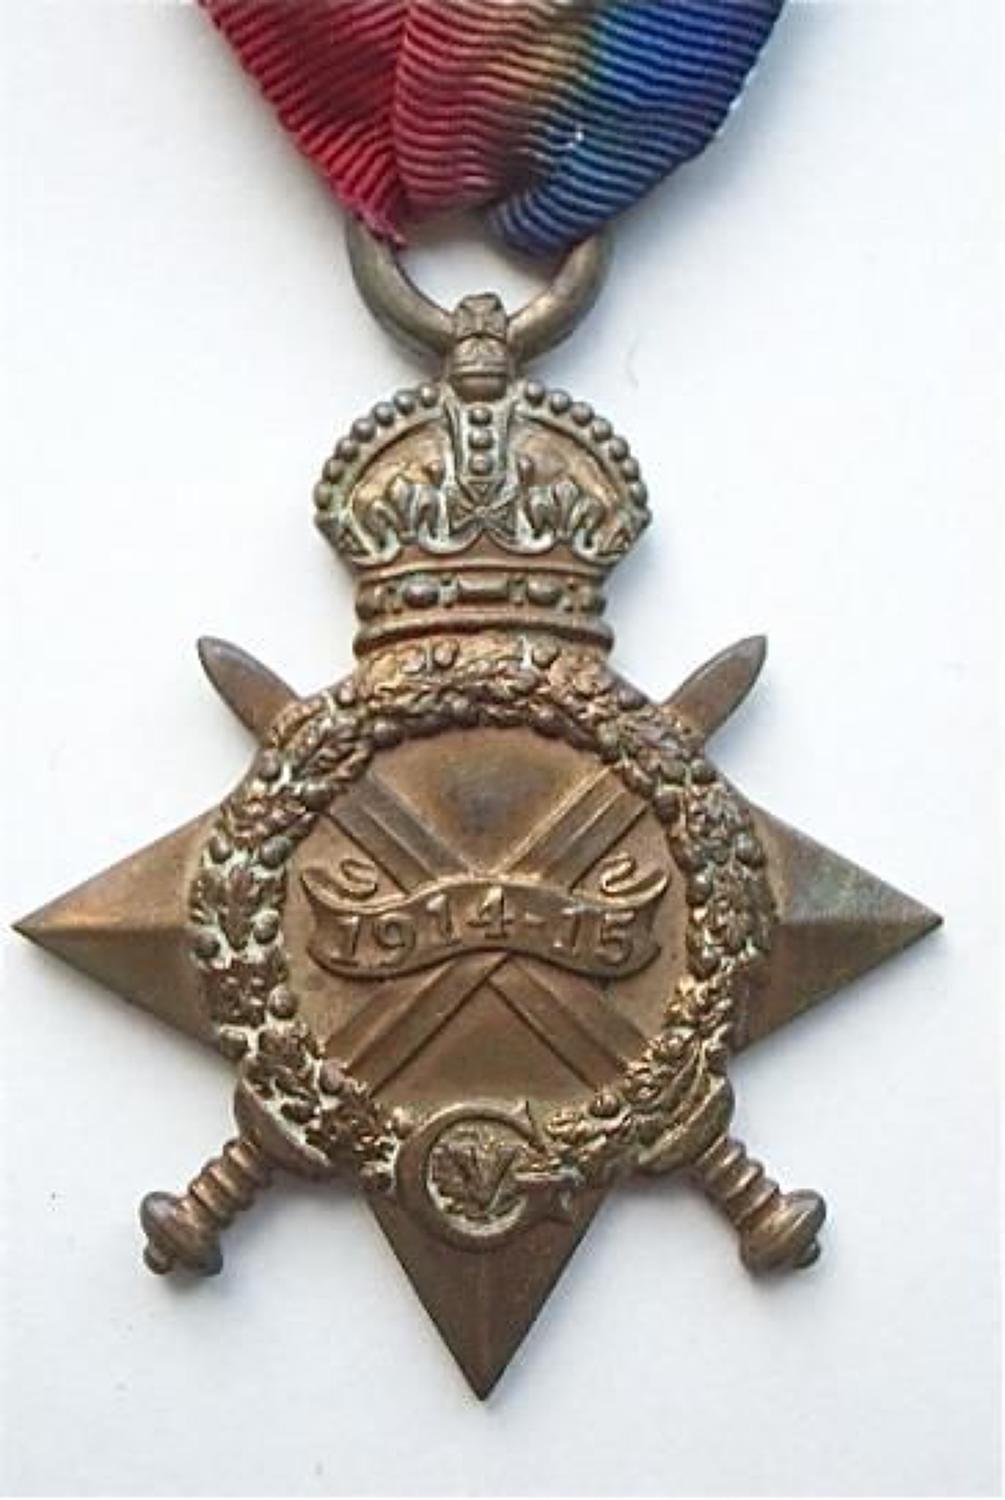 WW1 Army Service Corps 1914/15 Star Medal.